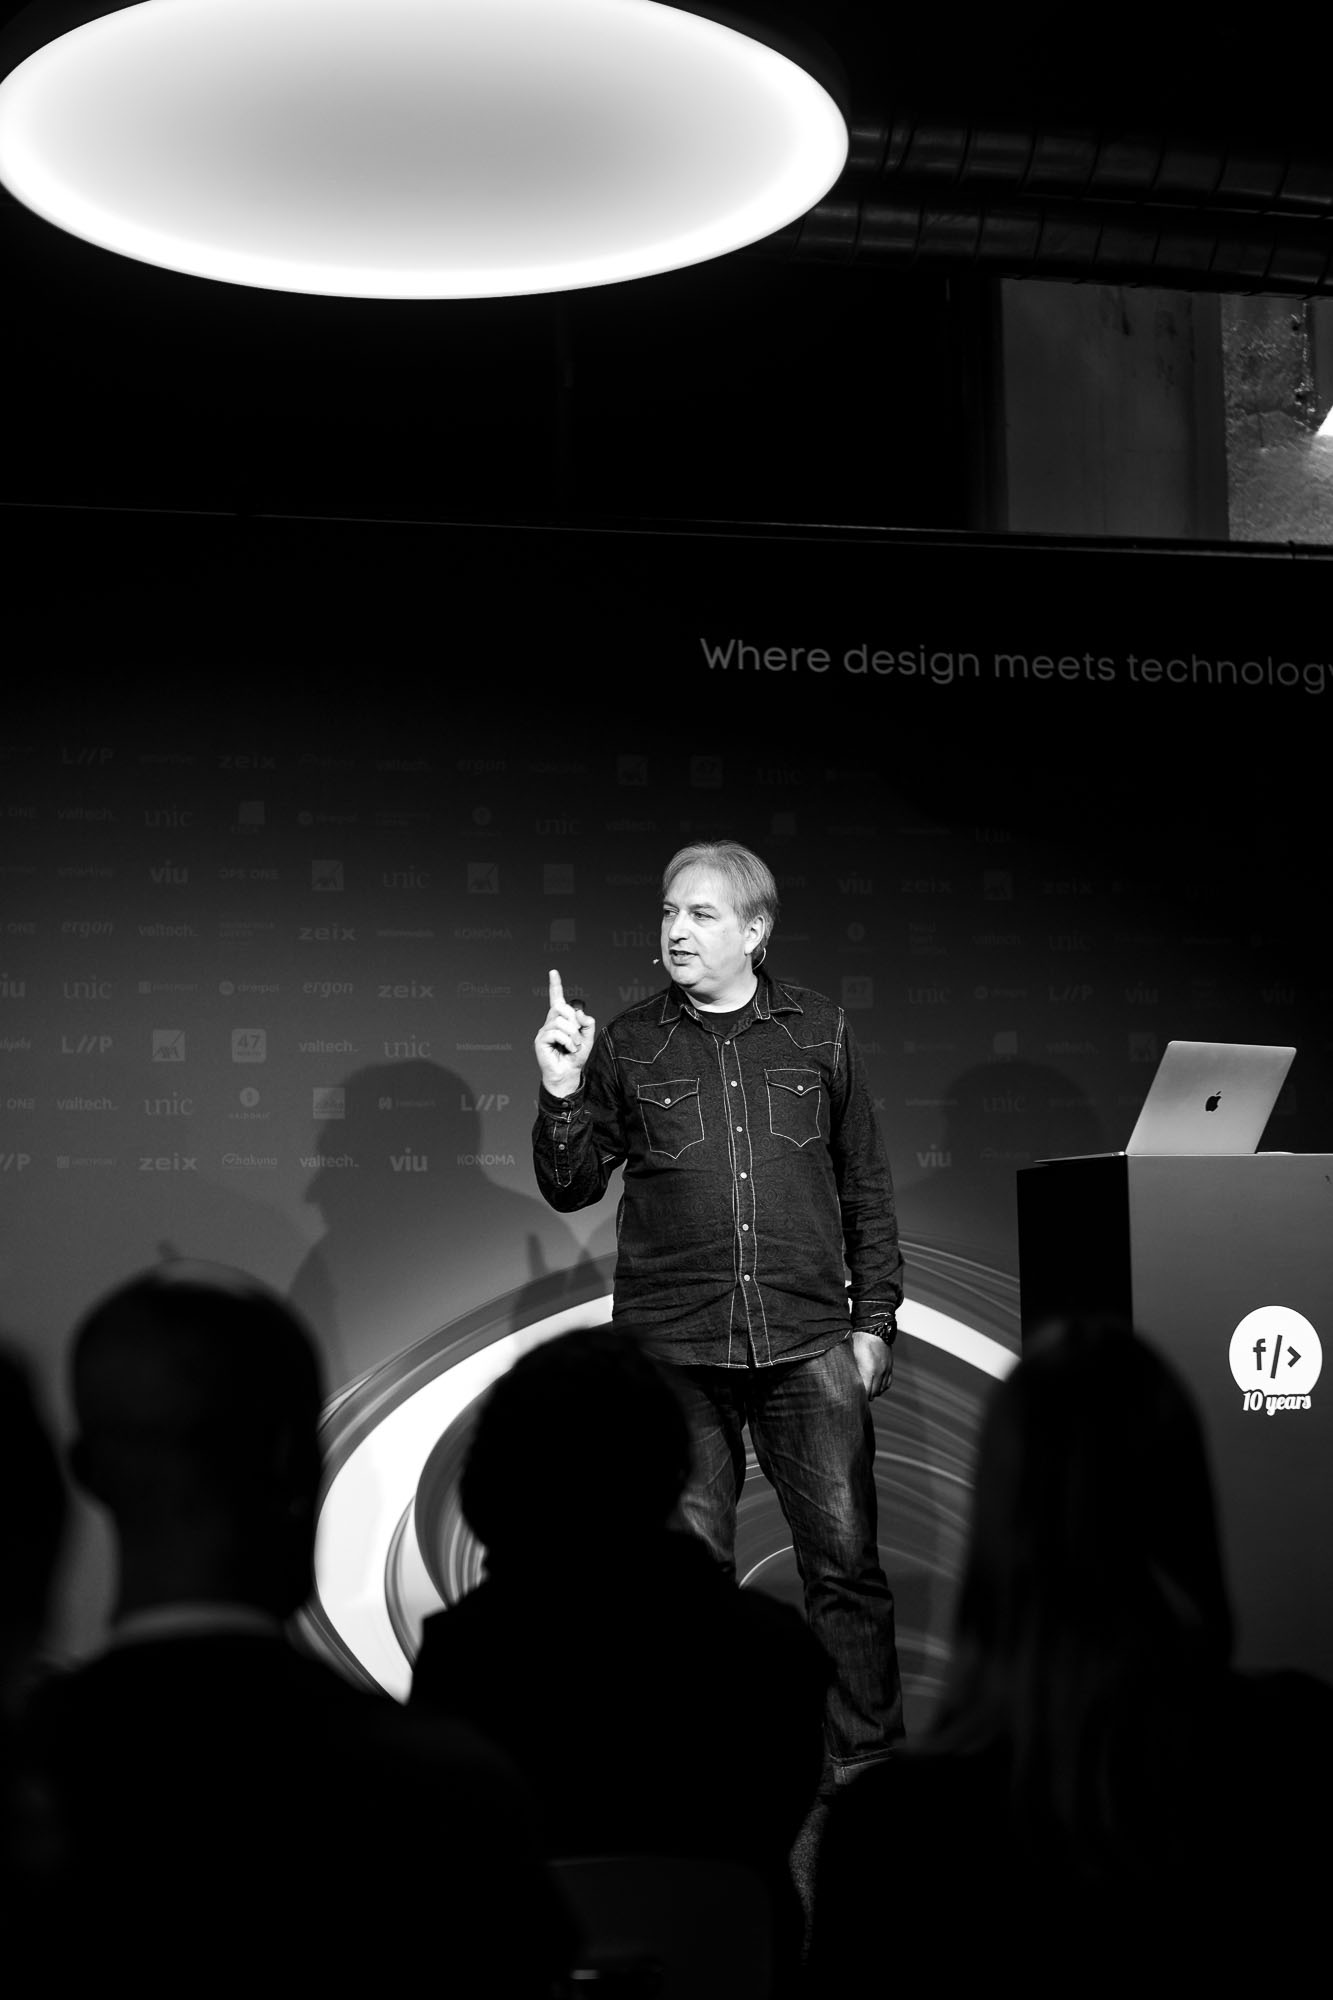 Jeremy Keith on stage at Front Conference 2021